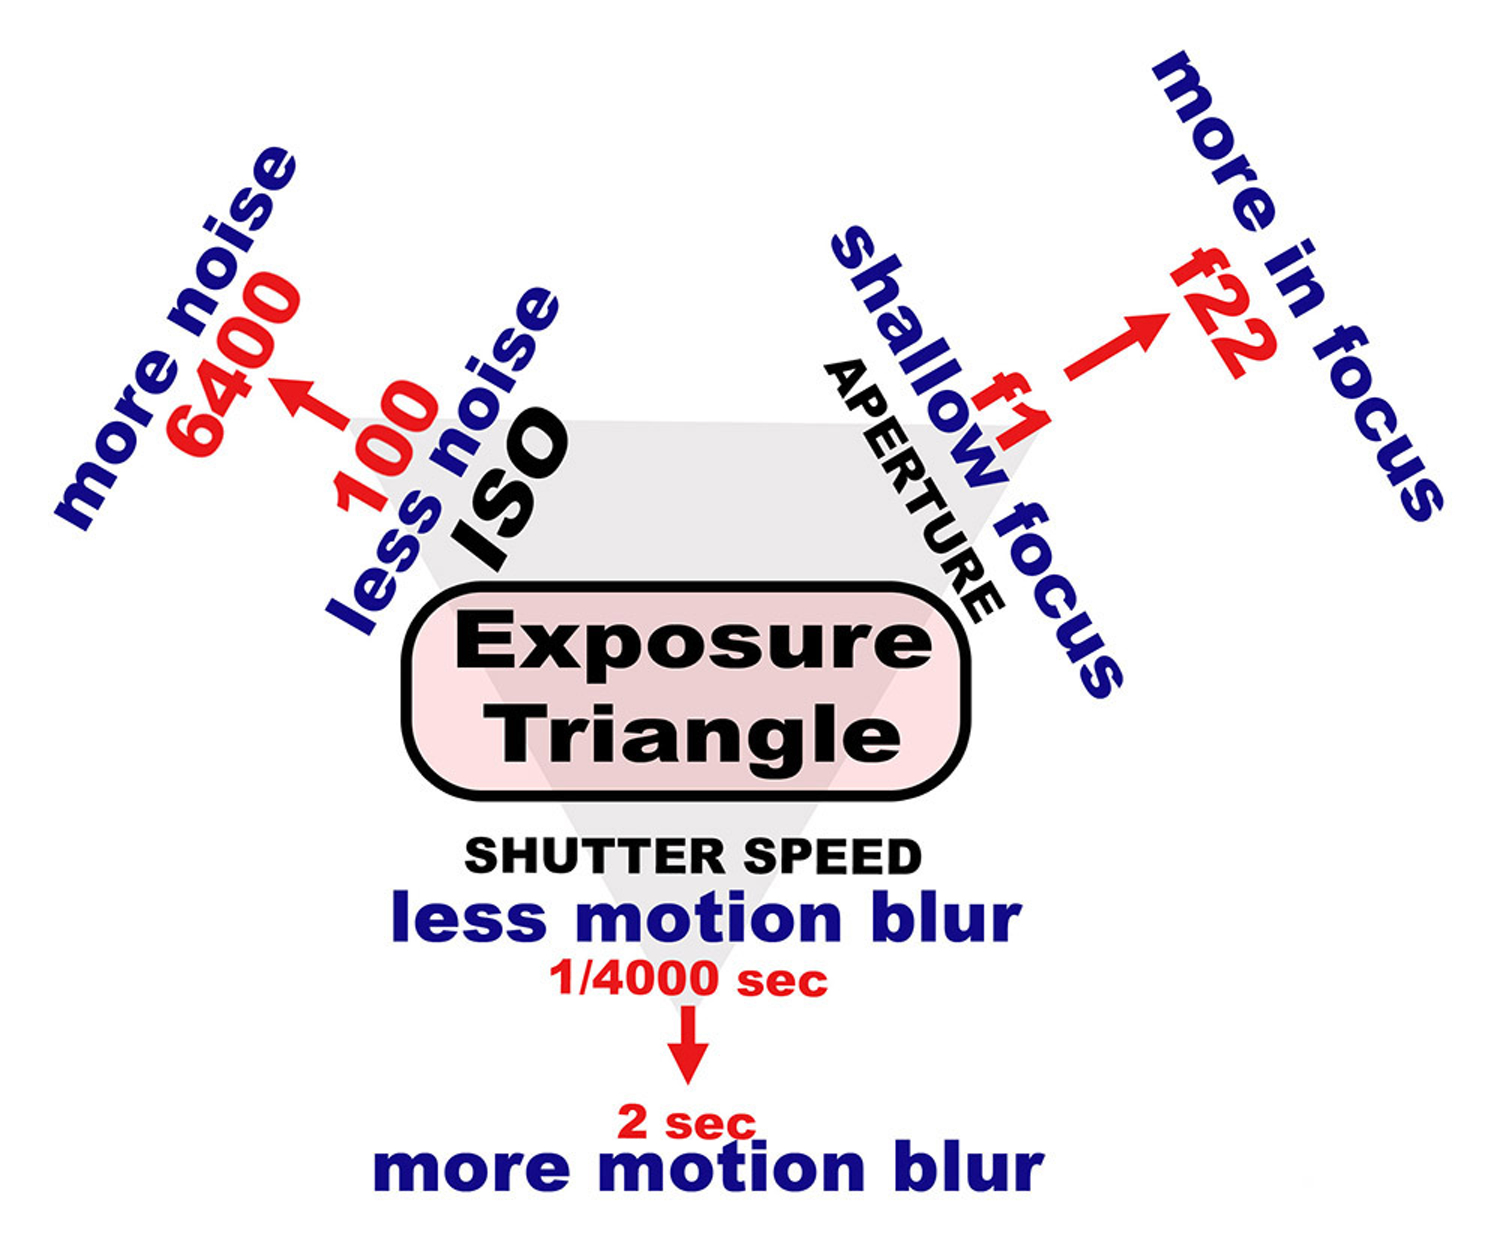 Exposure Trangle